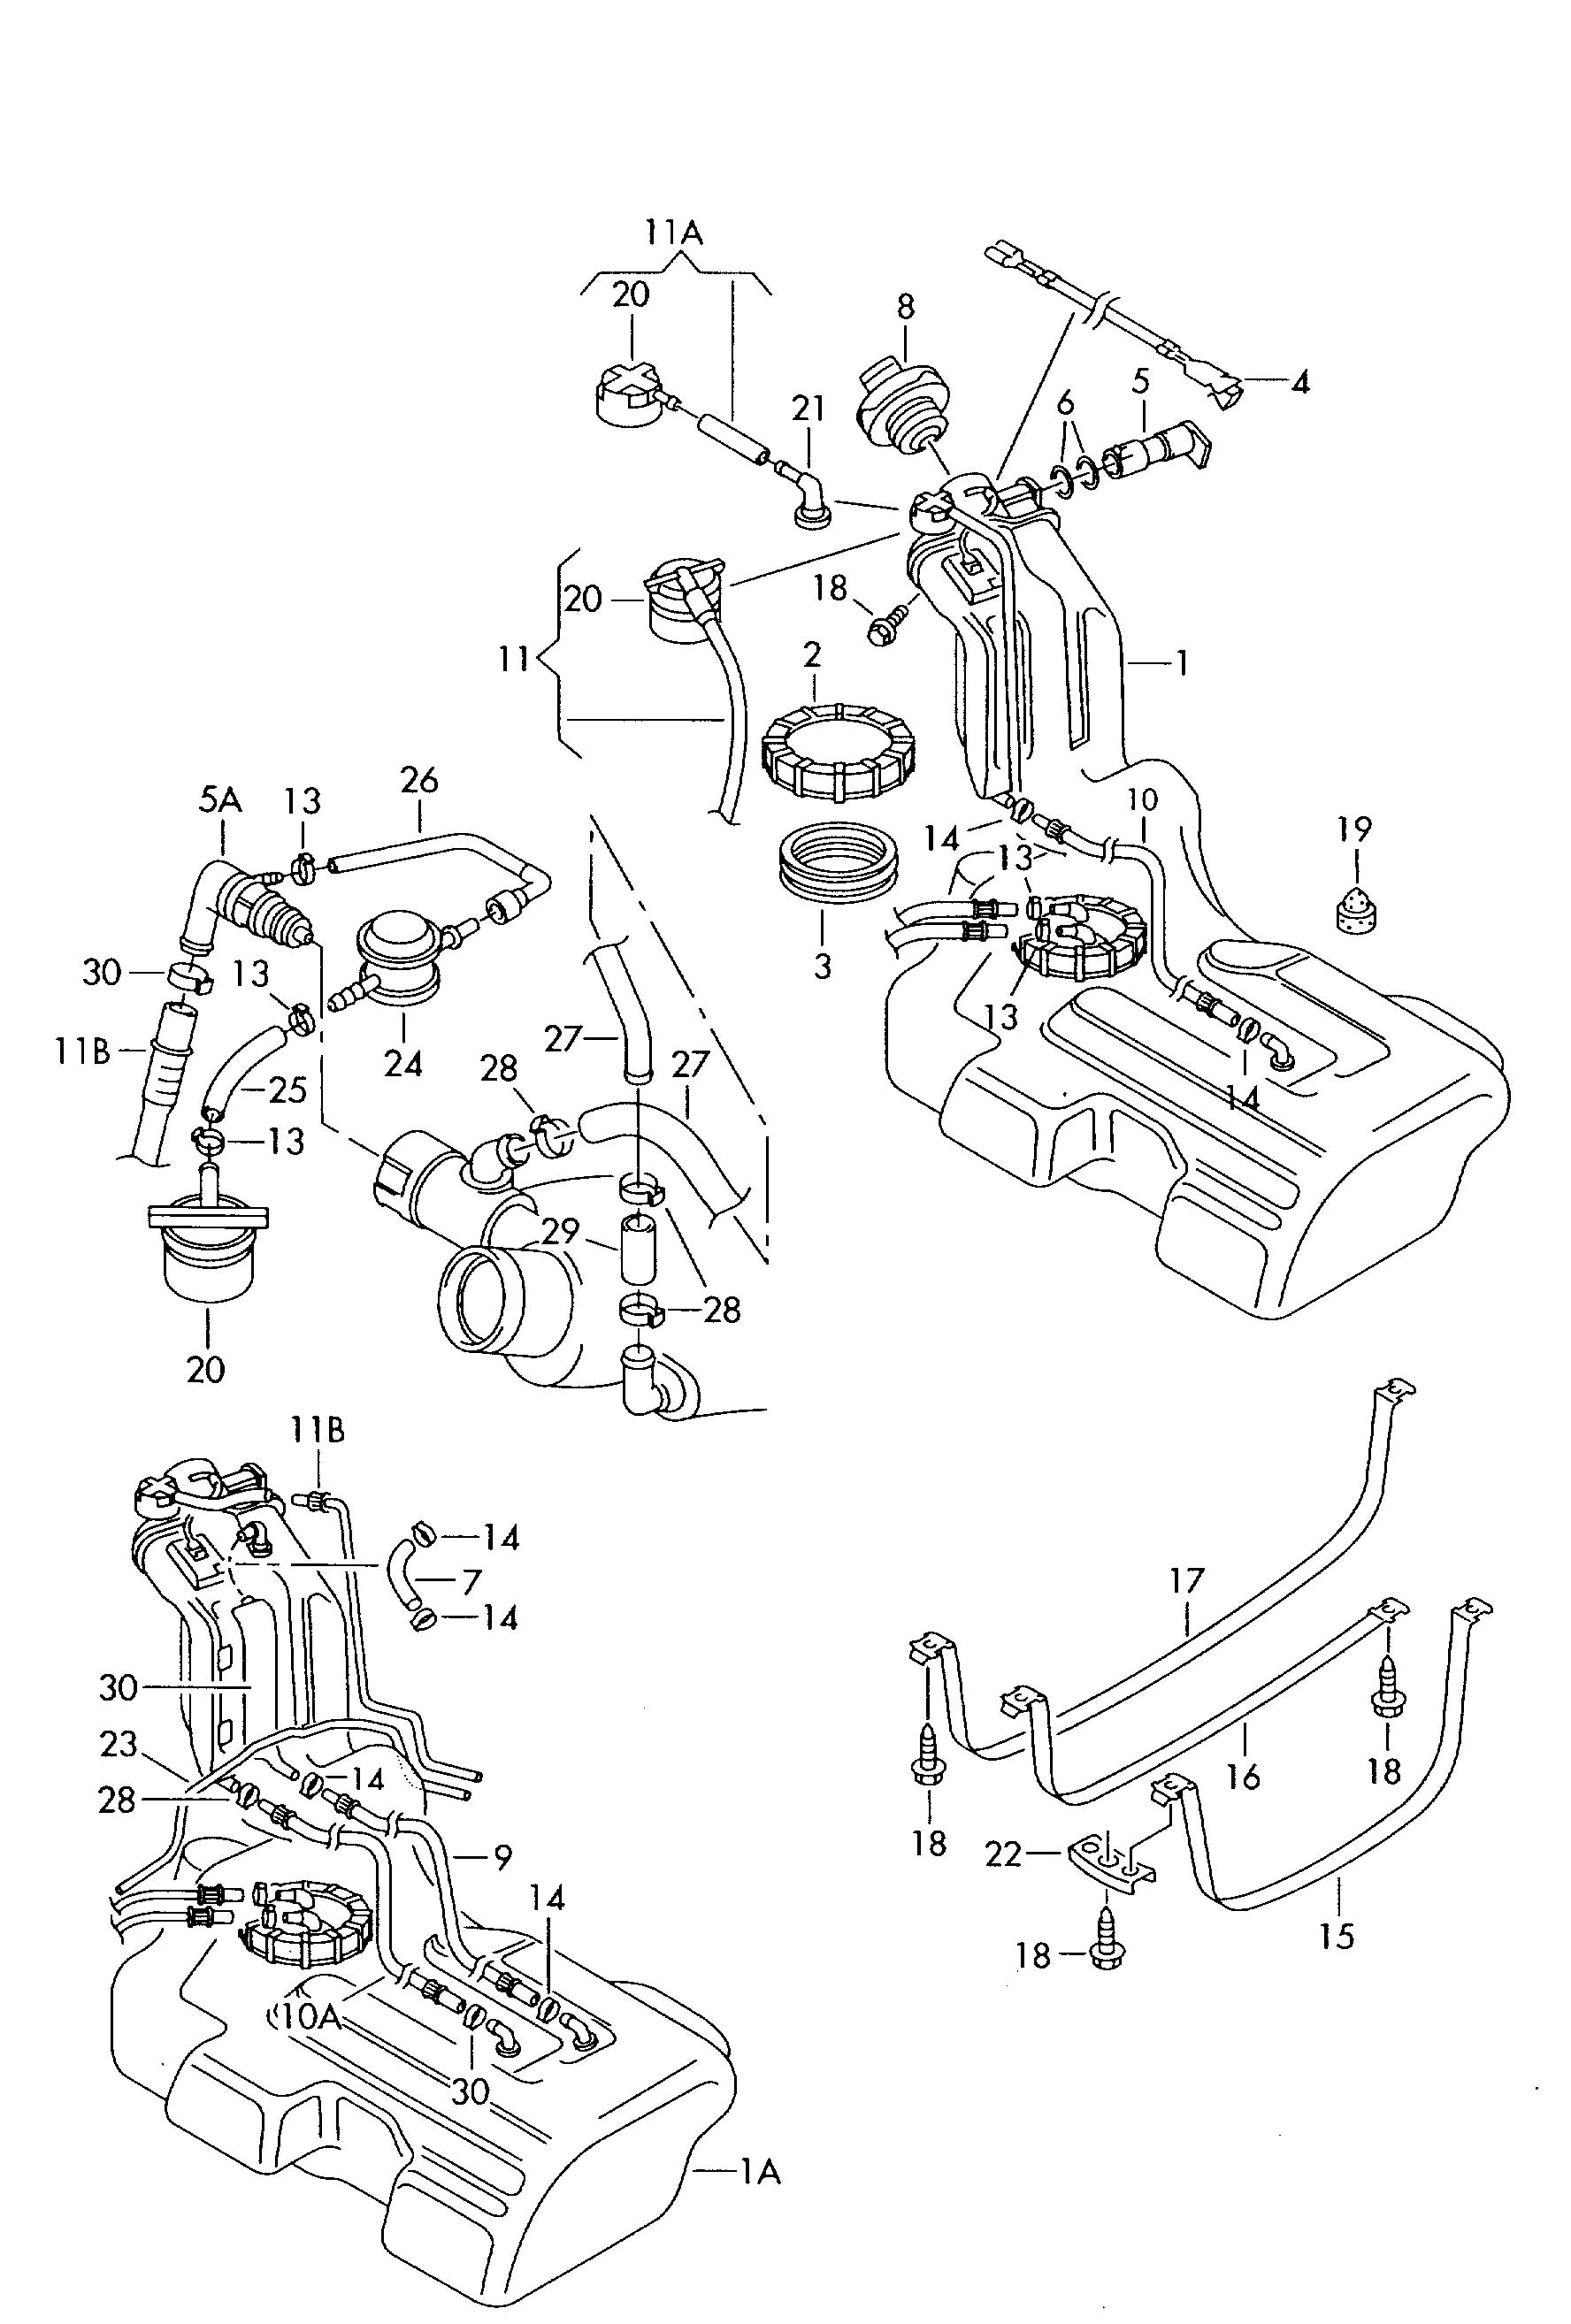 1999 vw passat engine diagram western golf cart wiring parts pictures to pin on pinterest